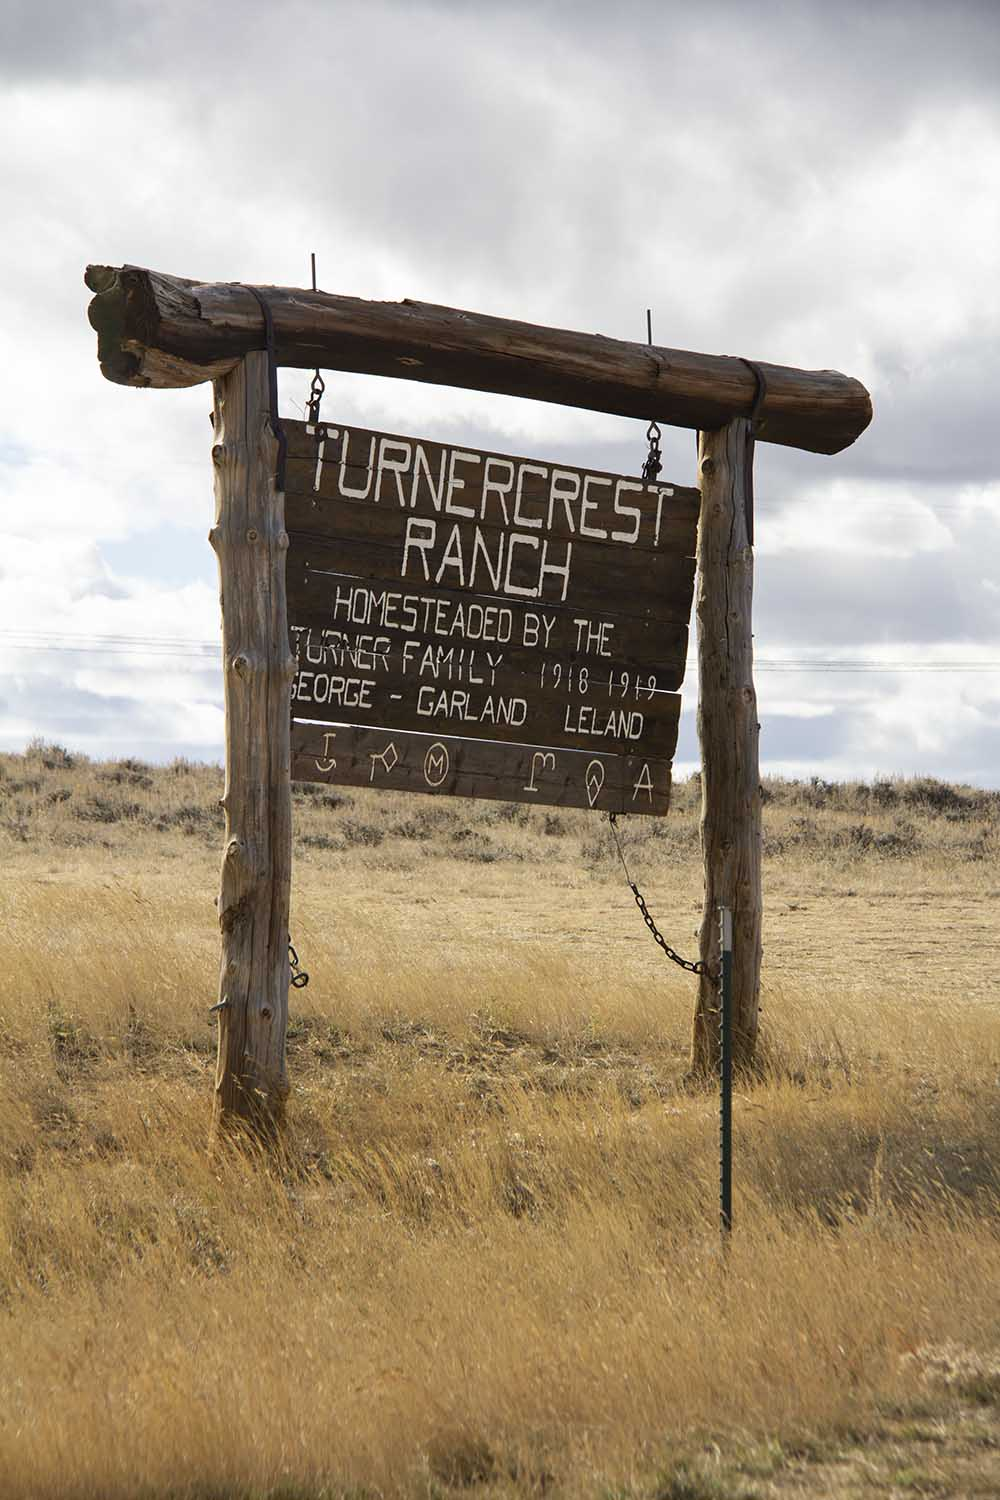 turnercrest_ranch_sign.jpg